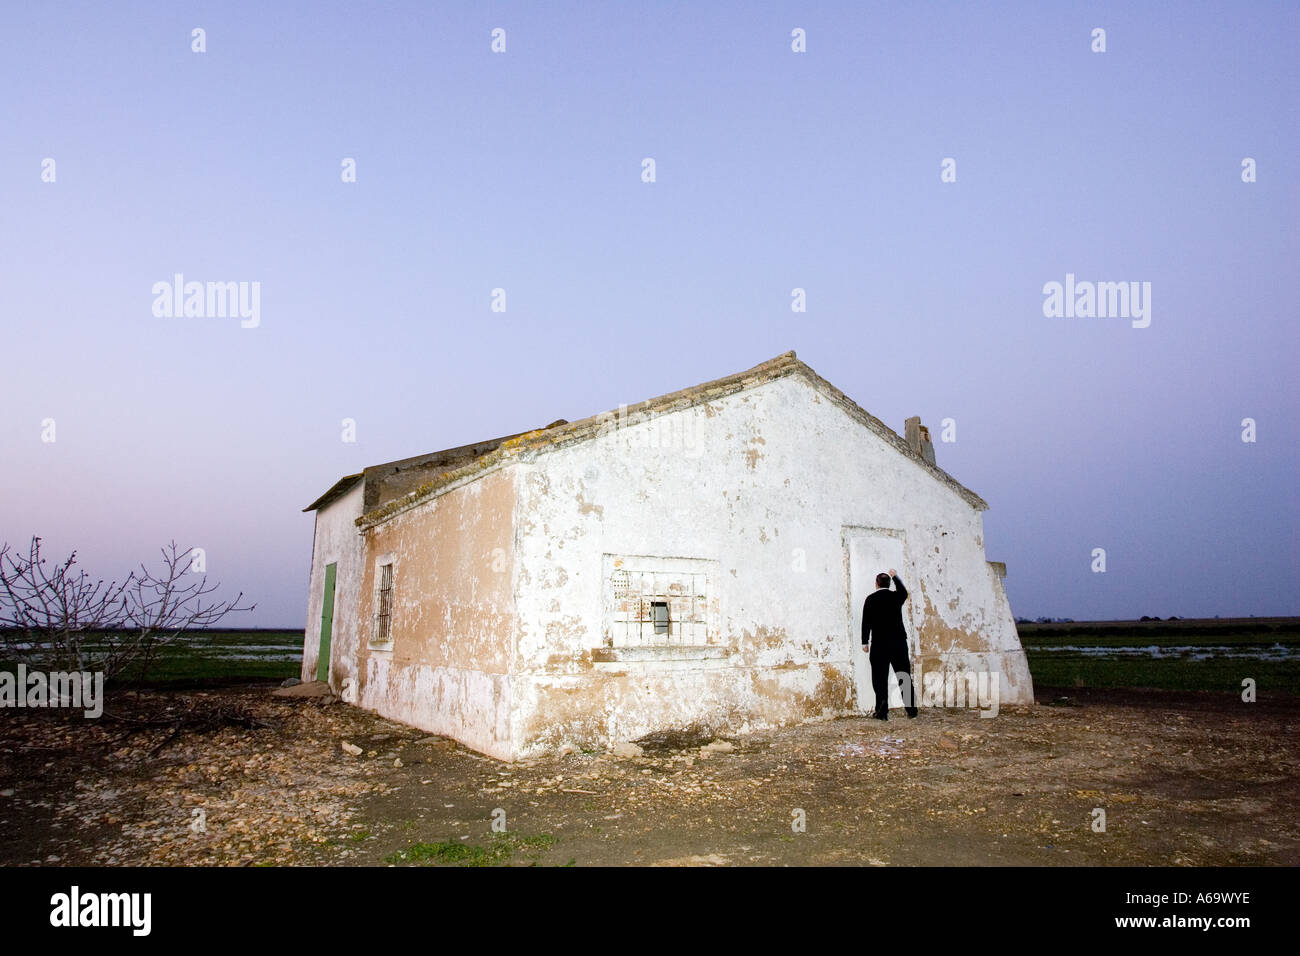 Man knocking on an abandoned house blocked off door at dusk. image conveys a sense of loneliness, despair and desolation. - Stock Image